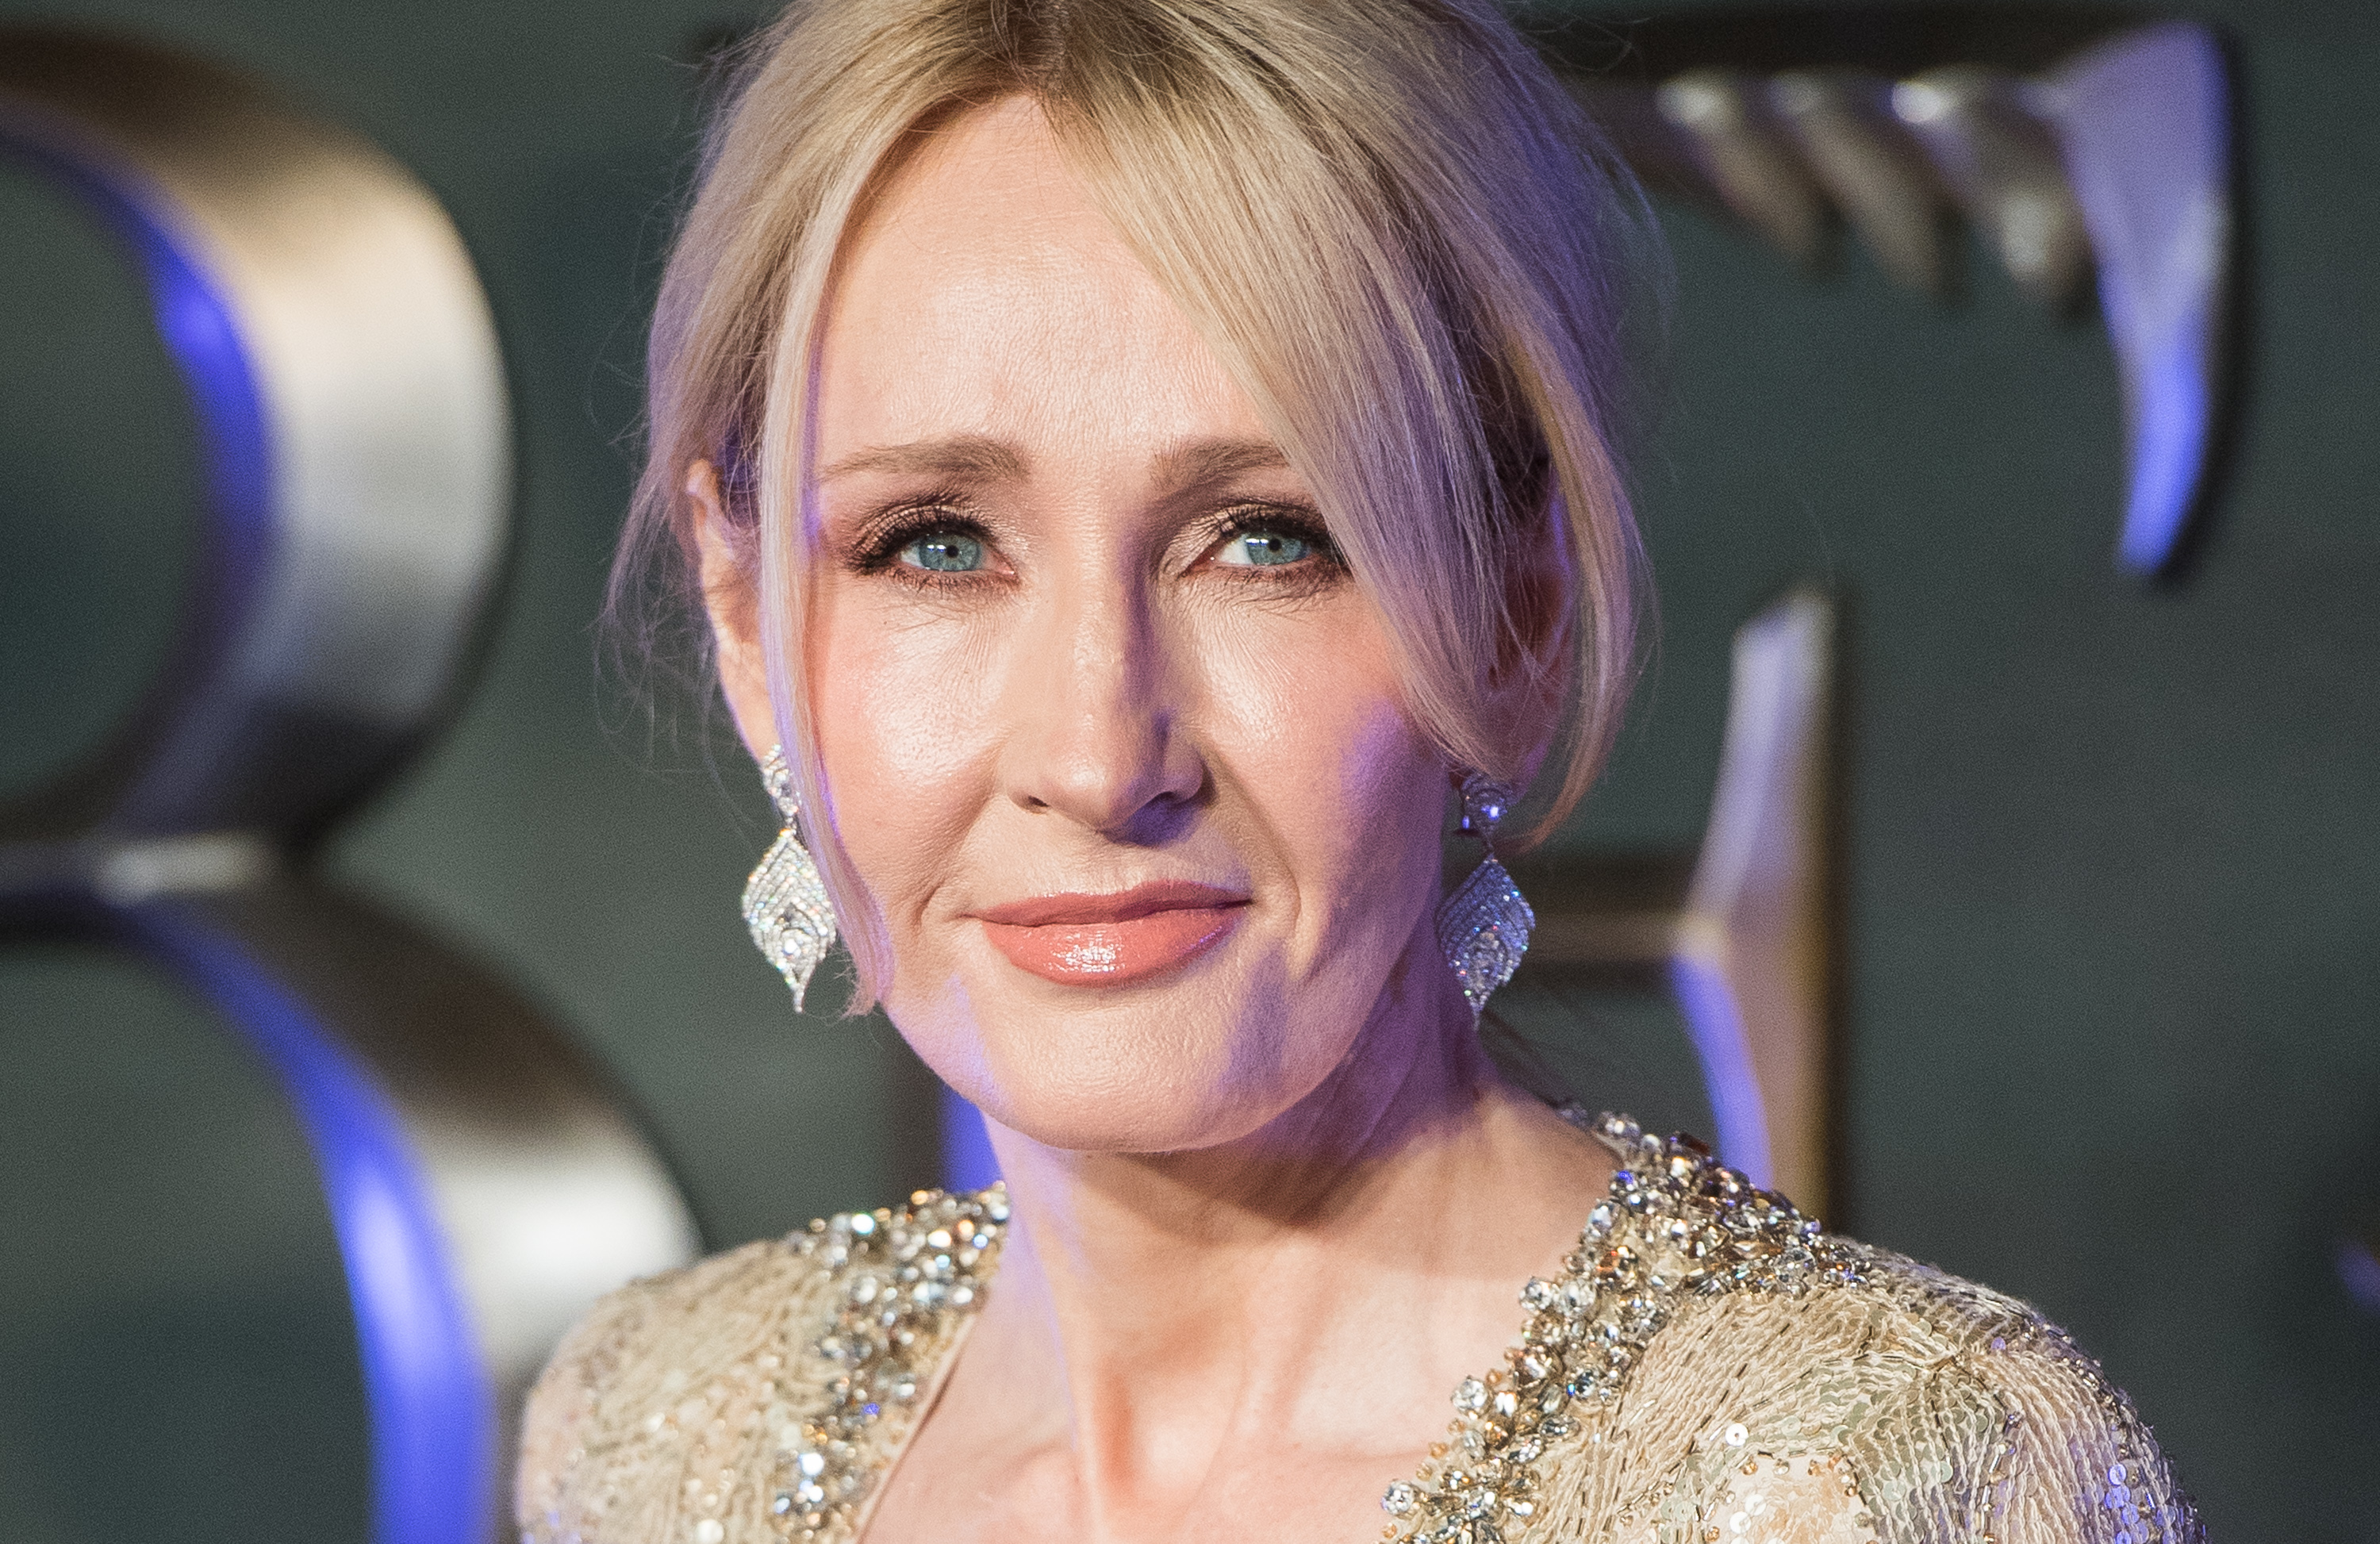 LONDON, ENGLAND - NOVEMBER 15:  J. K. Rowling attends the European premiere of  Fantastic Beasts And Where To Find Them  at Odeon Leicester Square on November 15, 2016 in London, England.  (Photo by Samir Hussein/WireImage)